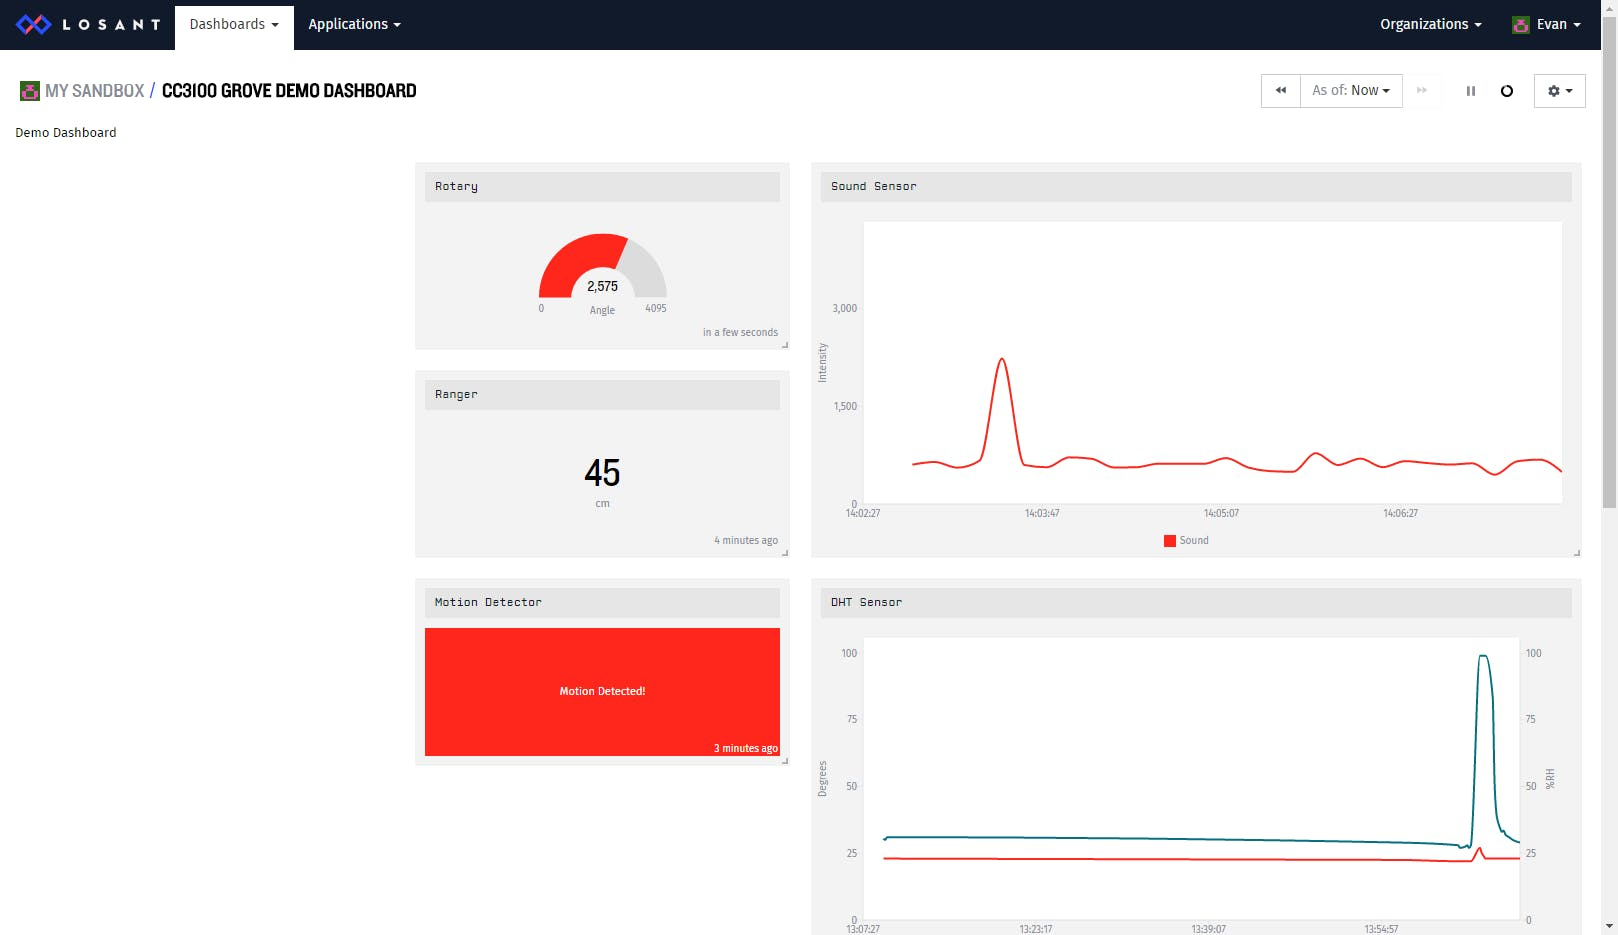 Losant IoT Platform MSP432 LaunchPad Grove Demo Dashboard